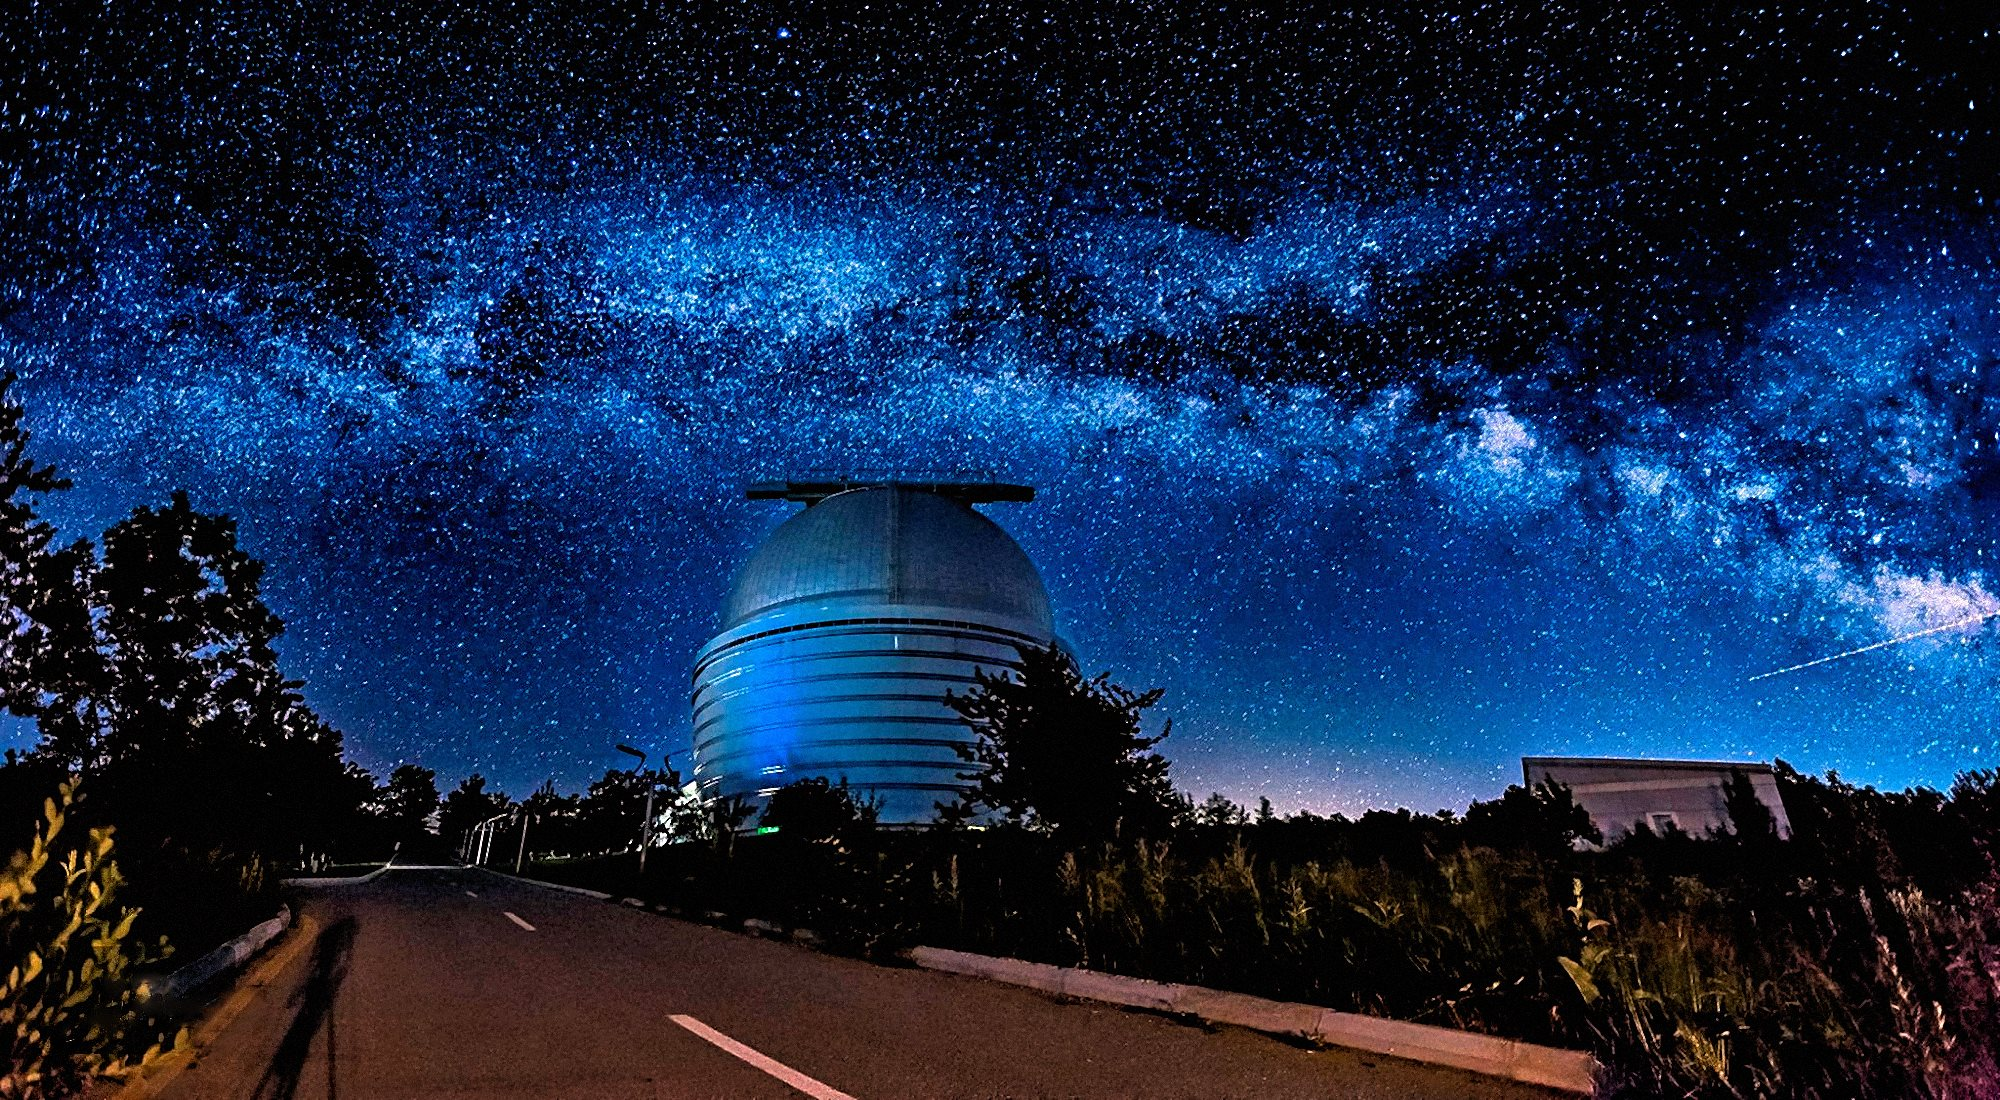 00 Faik Nagiyev. The Milky Way Over Nasreddin Tusi Shamakhi Astrophysical Observatory (ShAO) in Azerbaijan. 2016